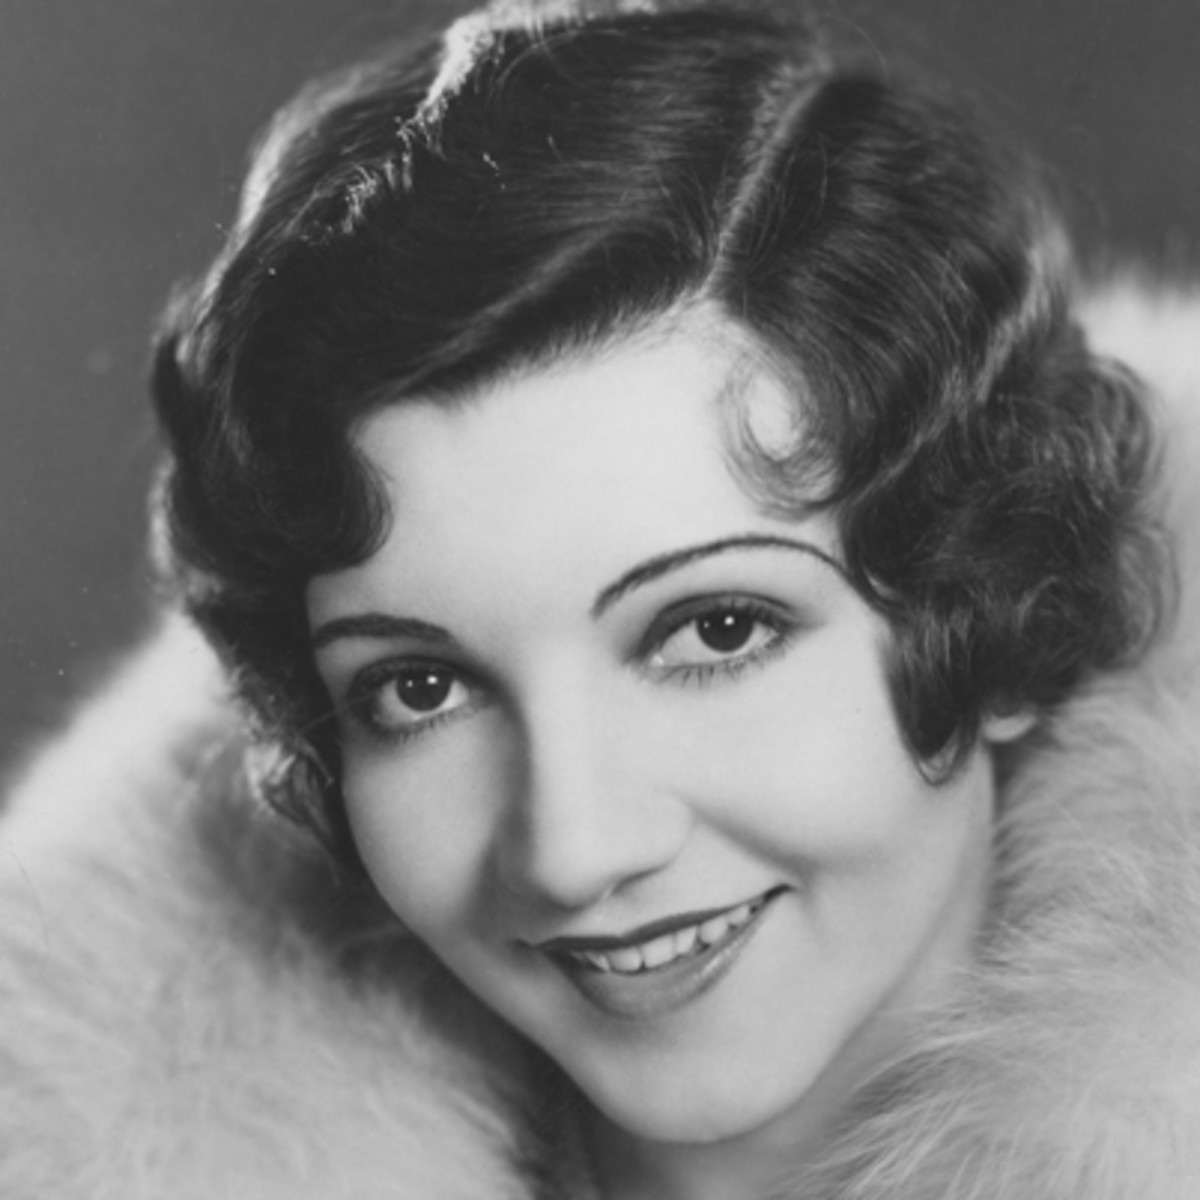 Claudette Colbert nudes (86 foto and video), Sexy, Paparazzi, Boobs, panties 2006